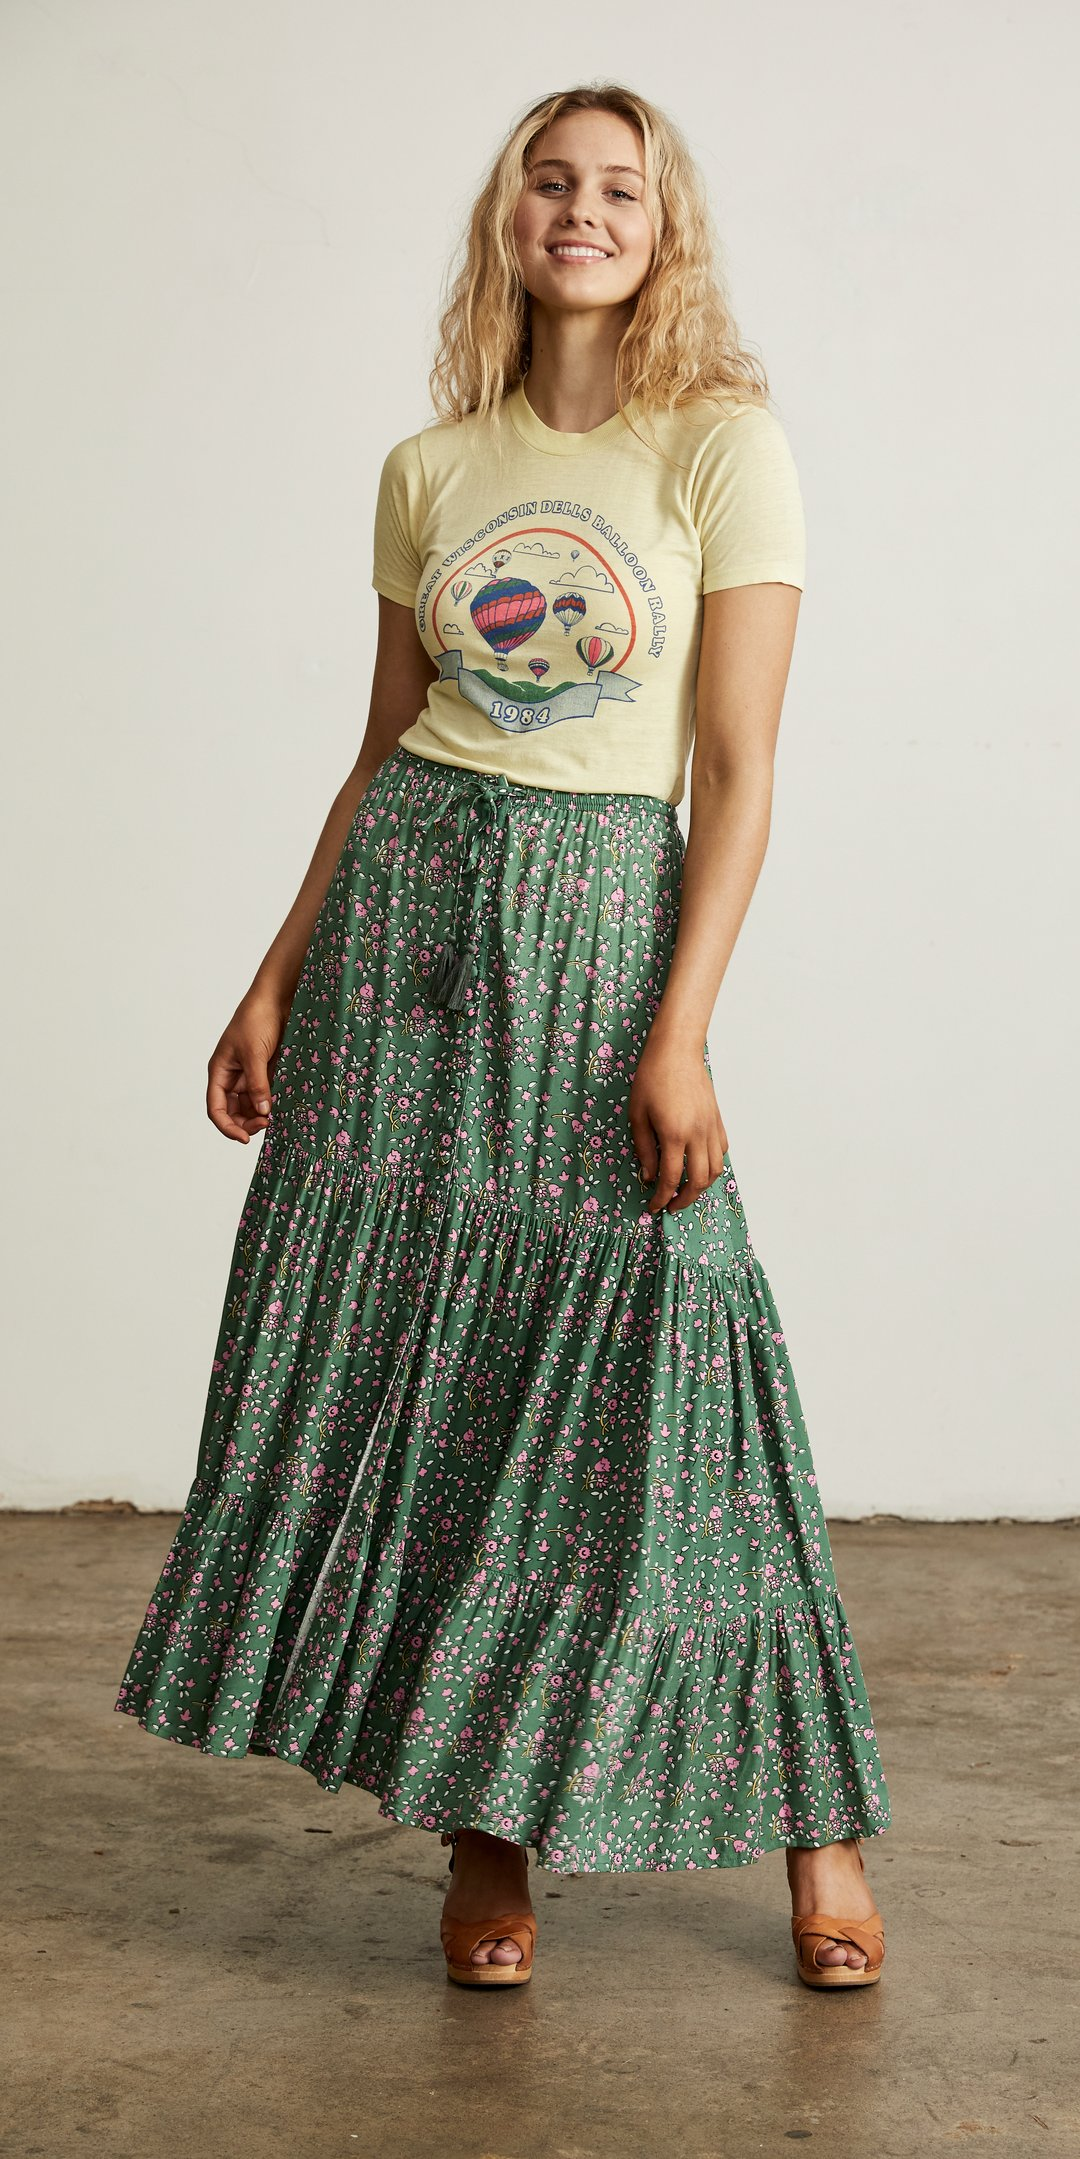 Charlie Boho Skirt Ethically Made SF Manuacturing.jpg